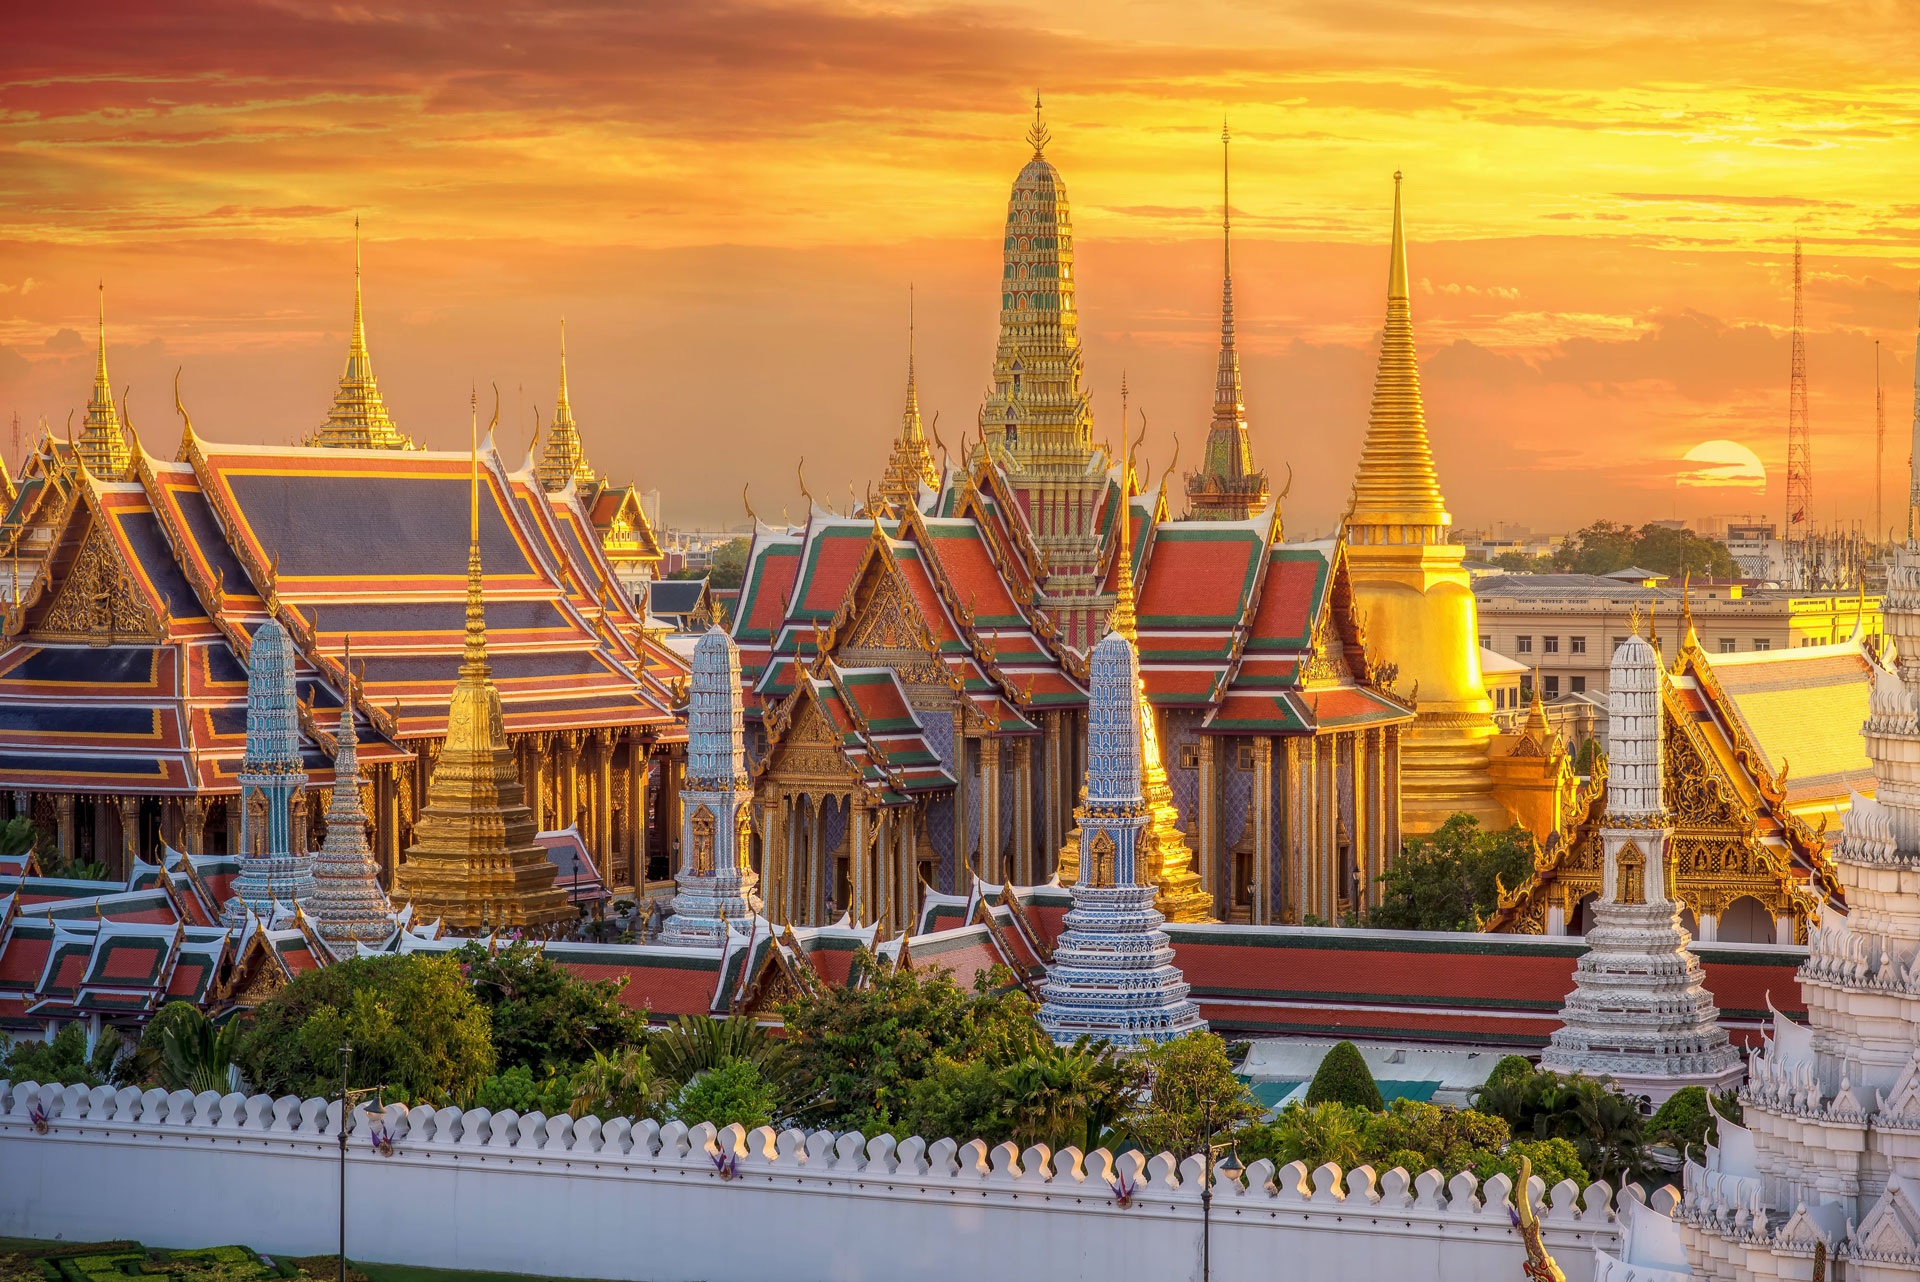 IR 'On the Road' Conference, Bangkok February 2022